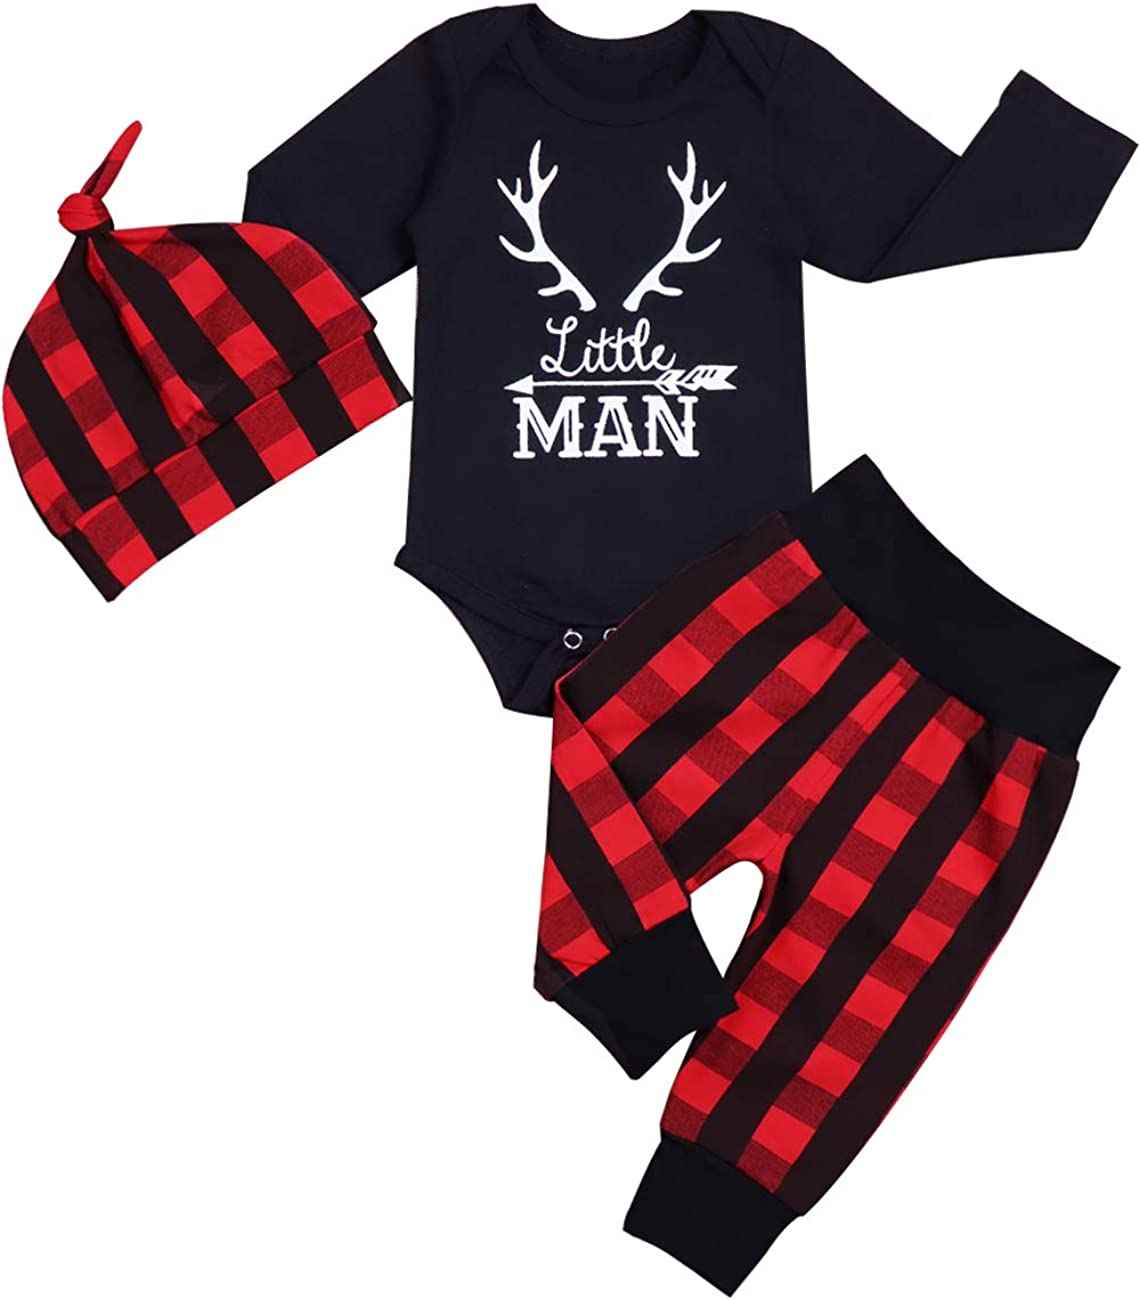 Newborn Infant Baby Boy Clothes Long Sleeve Romper,Deer Plaid Pant+ Little Man Hat 3Pcs Outfits Set